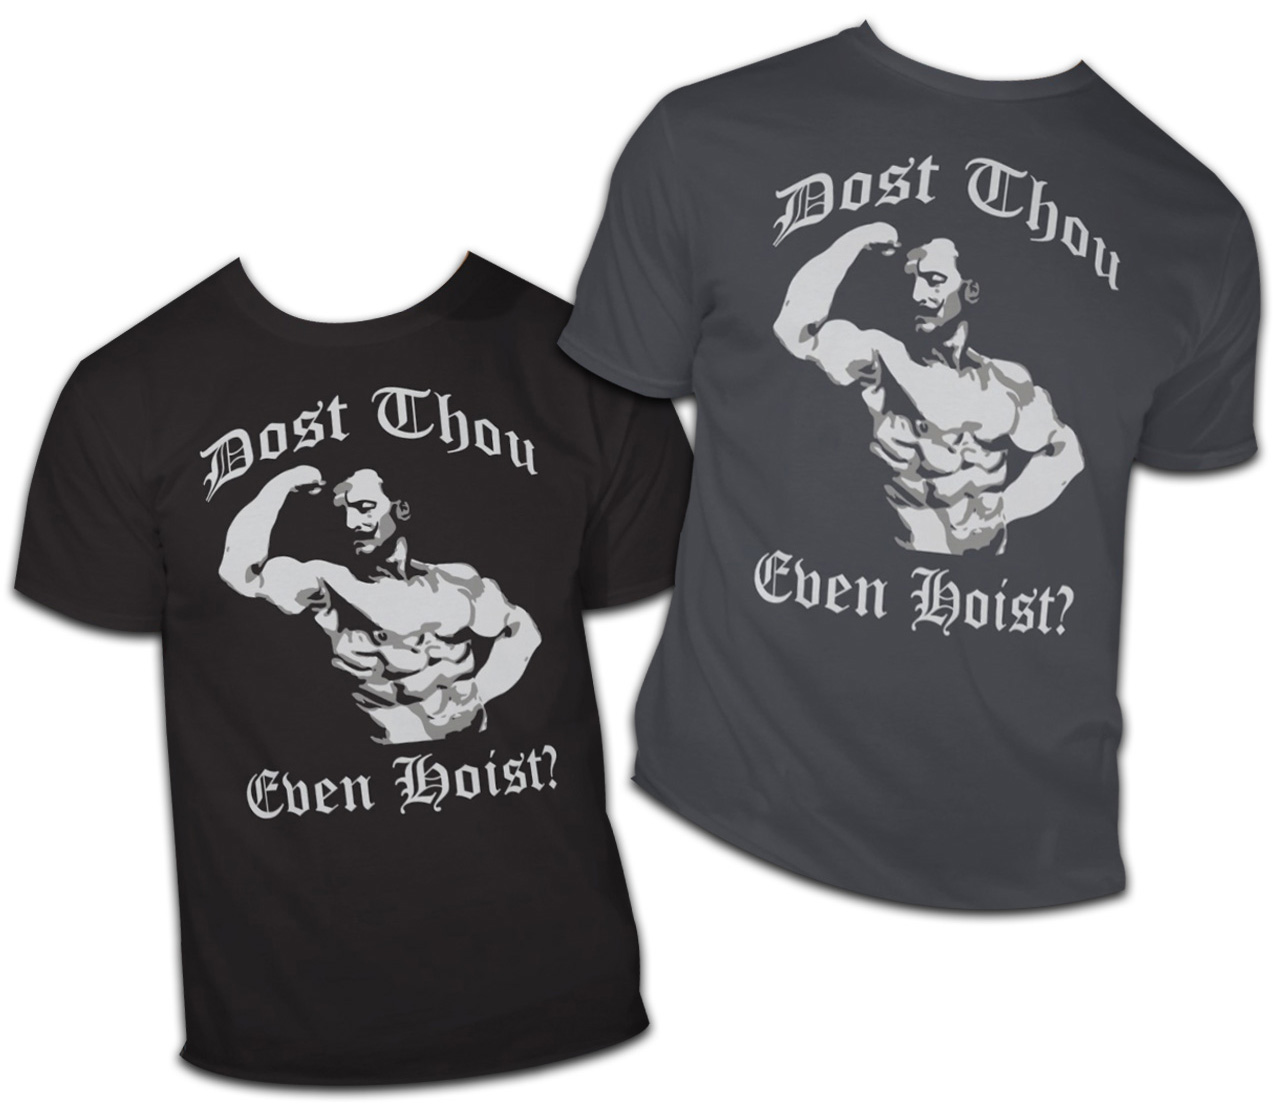 Eugen Sandow Father of Modern Bodybuilding - Dost Thou Even Host - Do You Even Lift  - apparel for bodybuilding, powerlifting, weightlifting, strongman, crossfit, etc